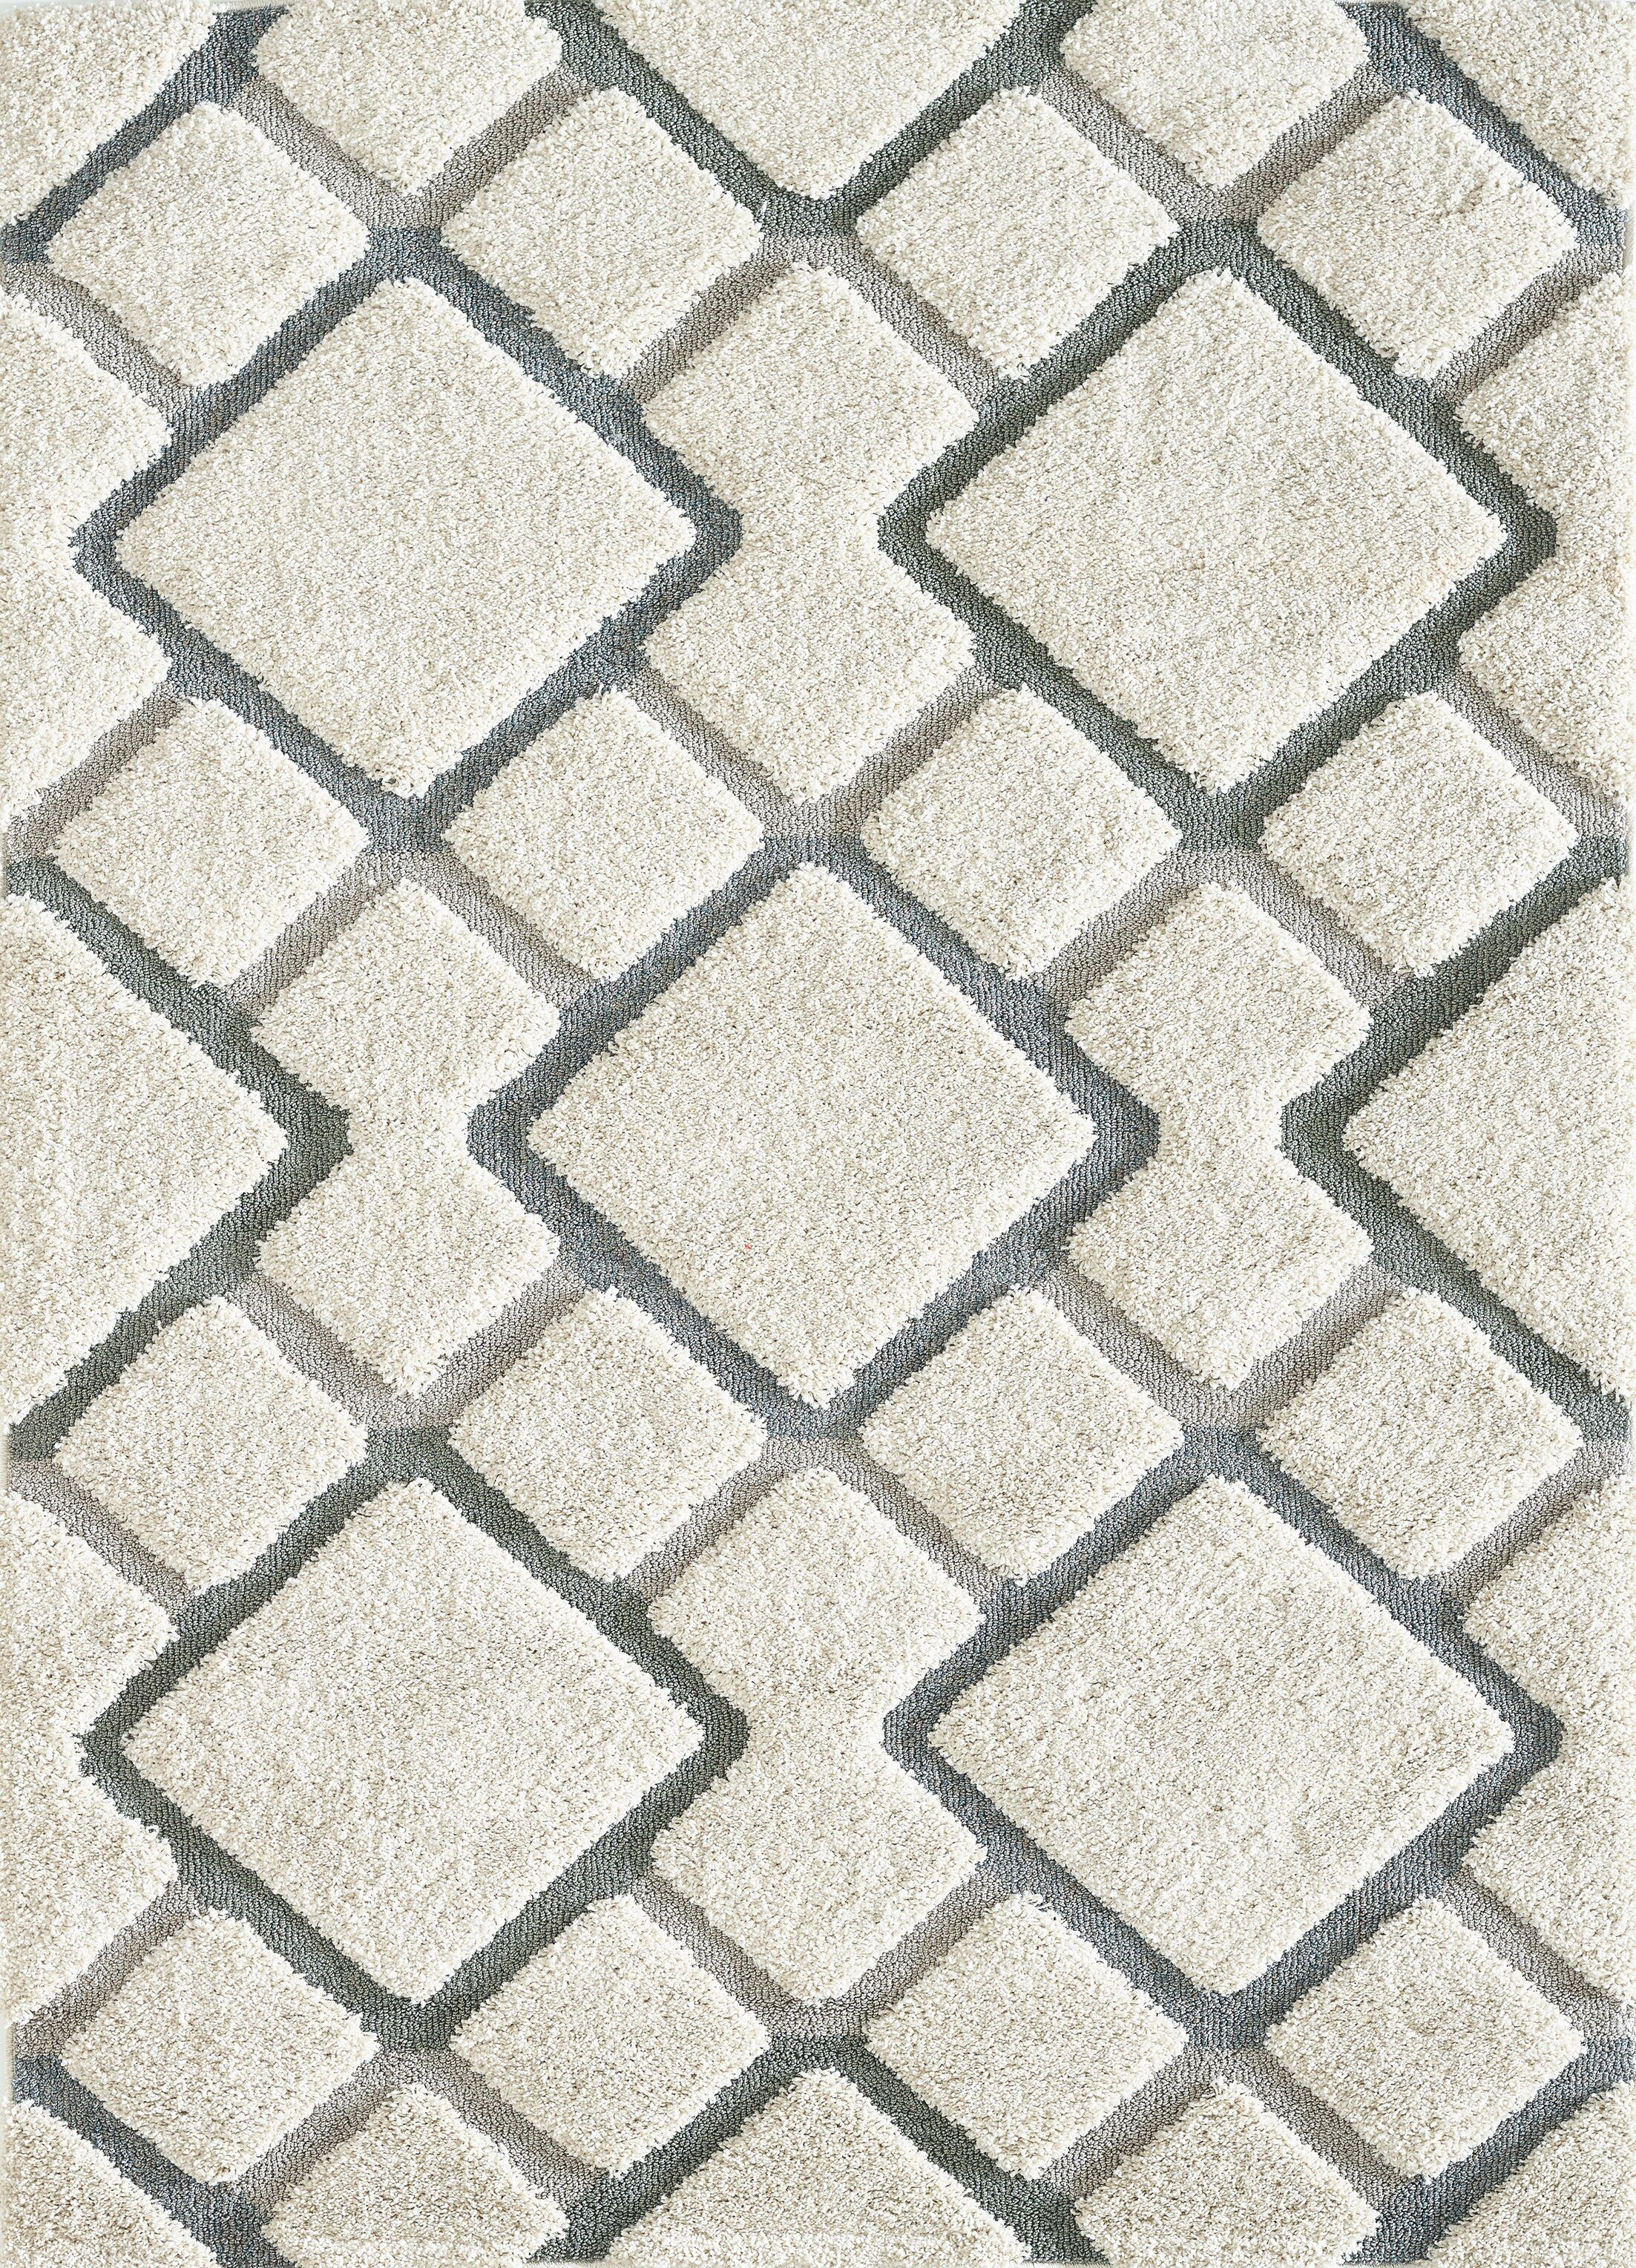 Cope Sandstone Gray Area Rug Rug Size: Rectangle 5'3